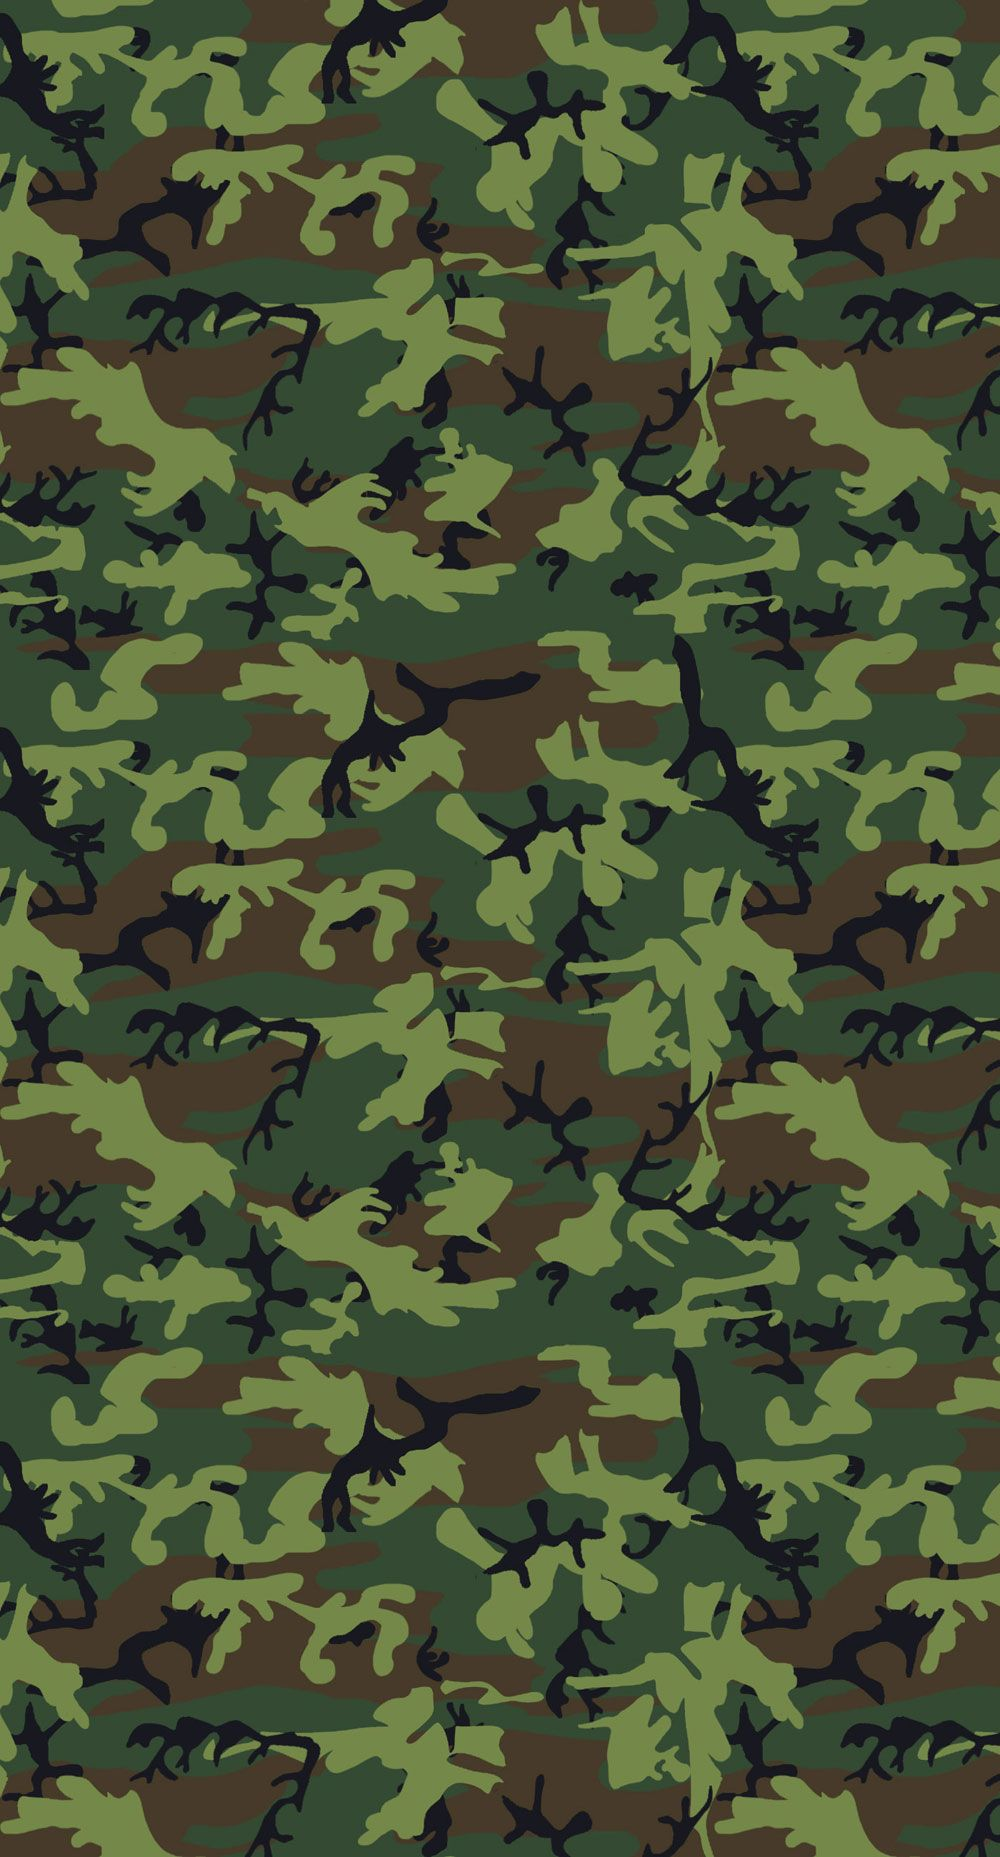 Green Army Pattern Camouflage Wallpaper Army Wallpaper Supreme Wallpaper Military Camouflage Army